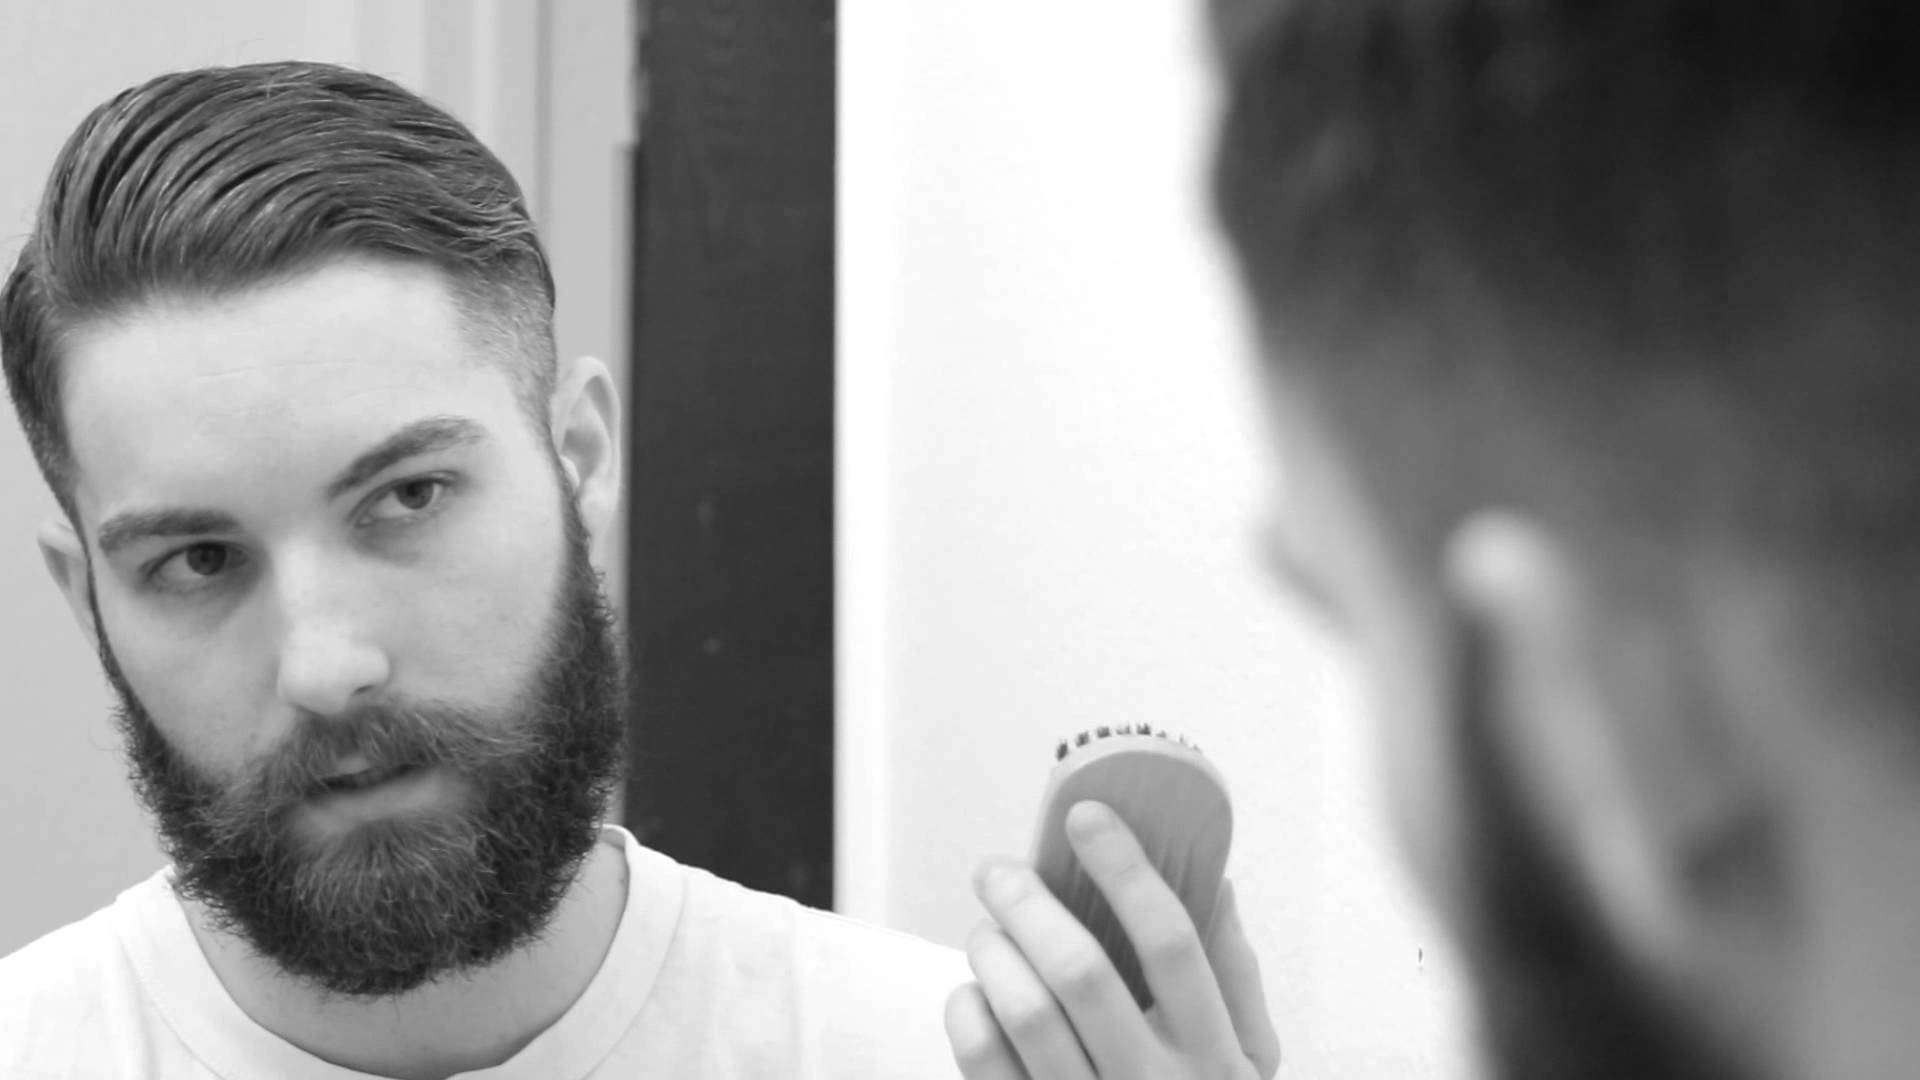 Beard Growth : Benefits Of Castor Oil & How To Apply Castor Oil